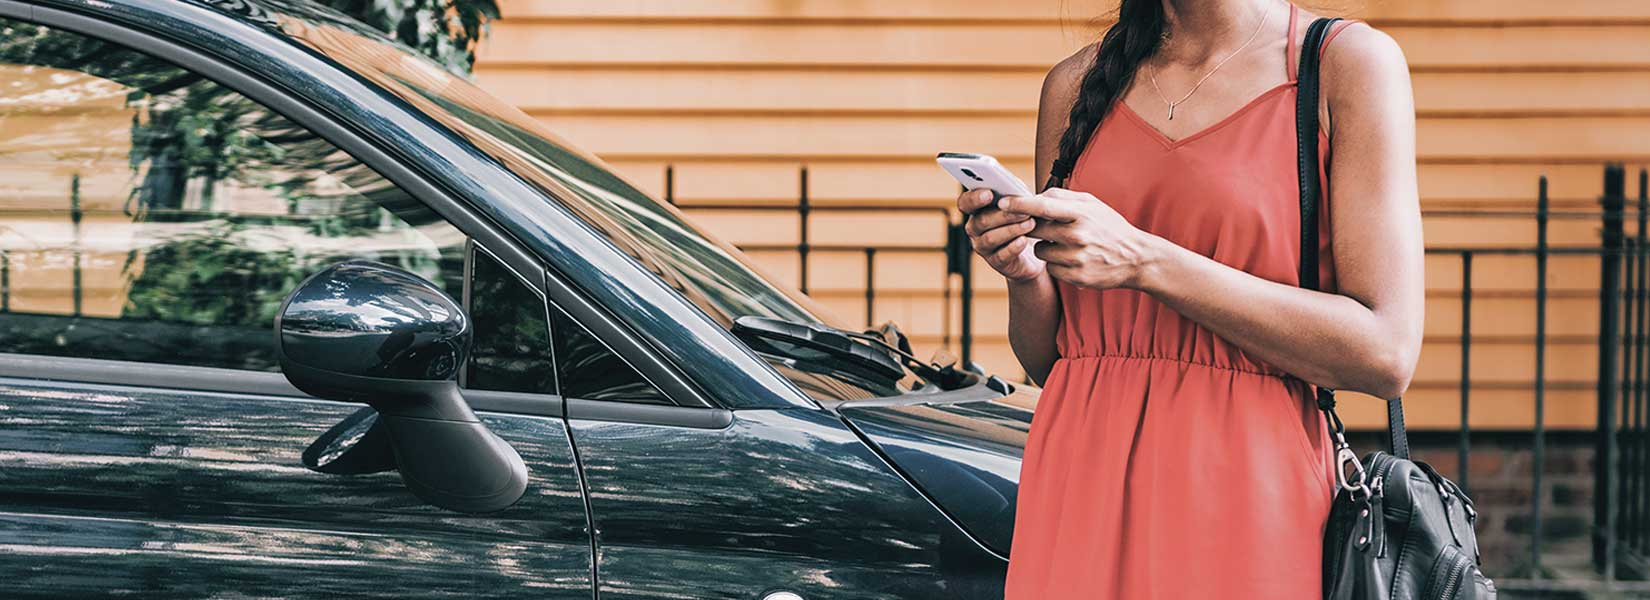 Uber Or Lyft Drivers That Drive Erratic Or Put You In Danger